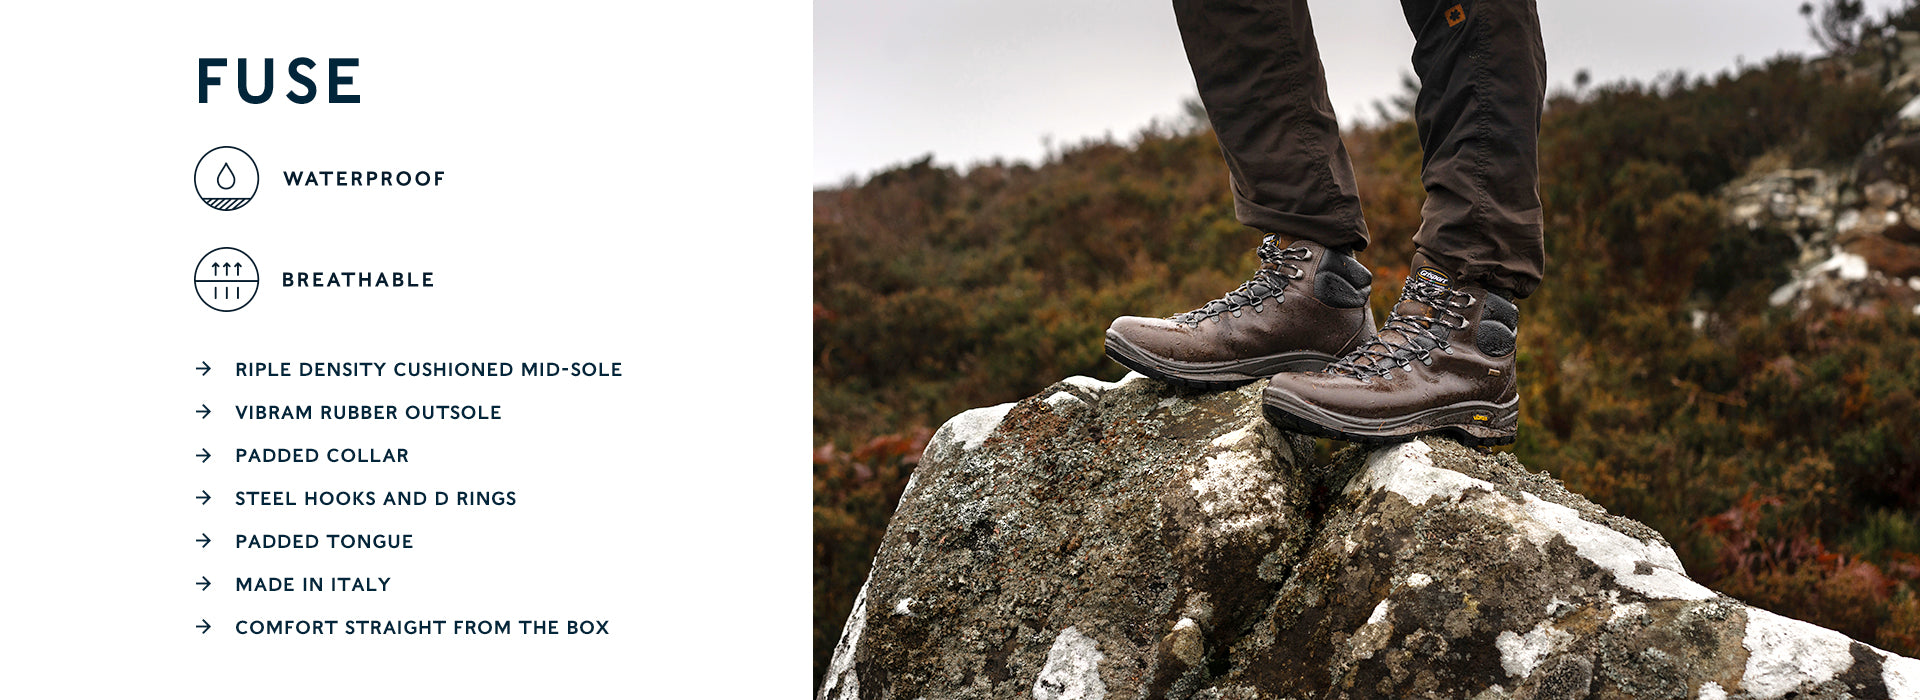 Grisport Fuse Mens Boots: Waterproof; Breathable; Triple Density Cushioned mid-sole; Vibram Rubber Outsole; Padded Collar; Steel Hooks and D Rings; Padded Tongue; Made in Italy; Comfort straight from the box